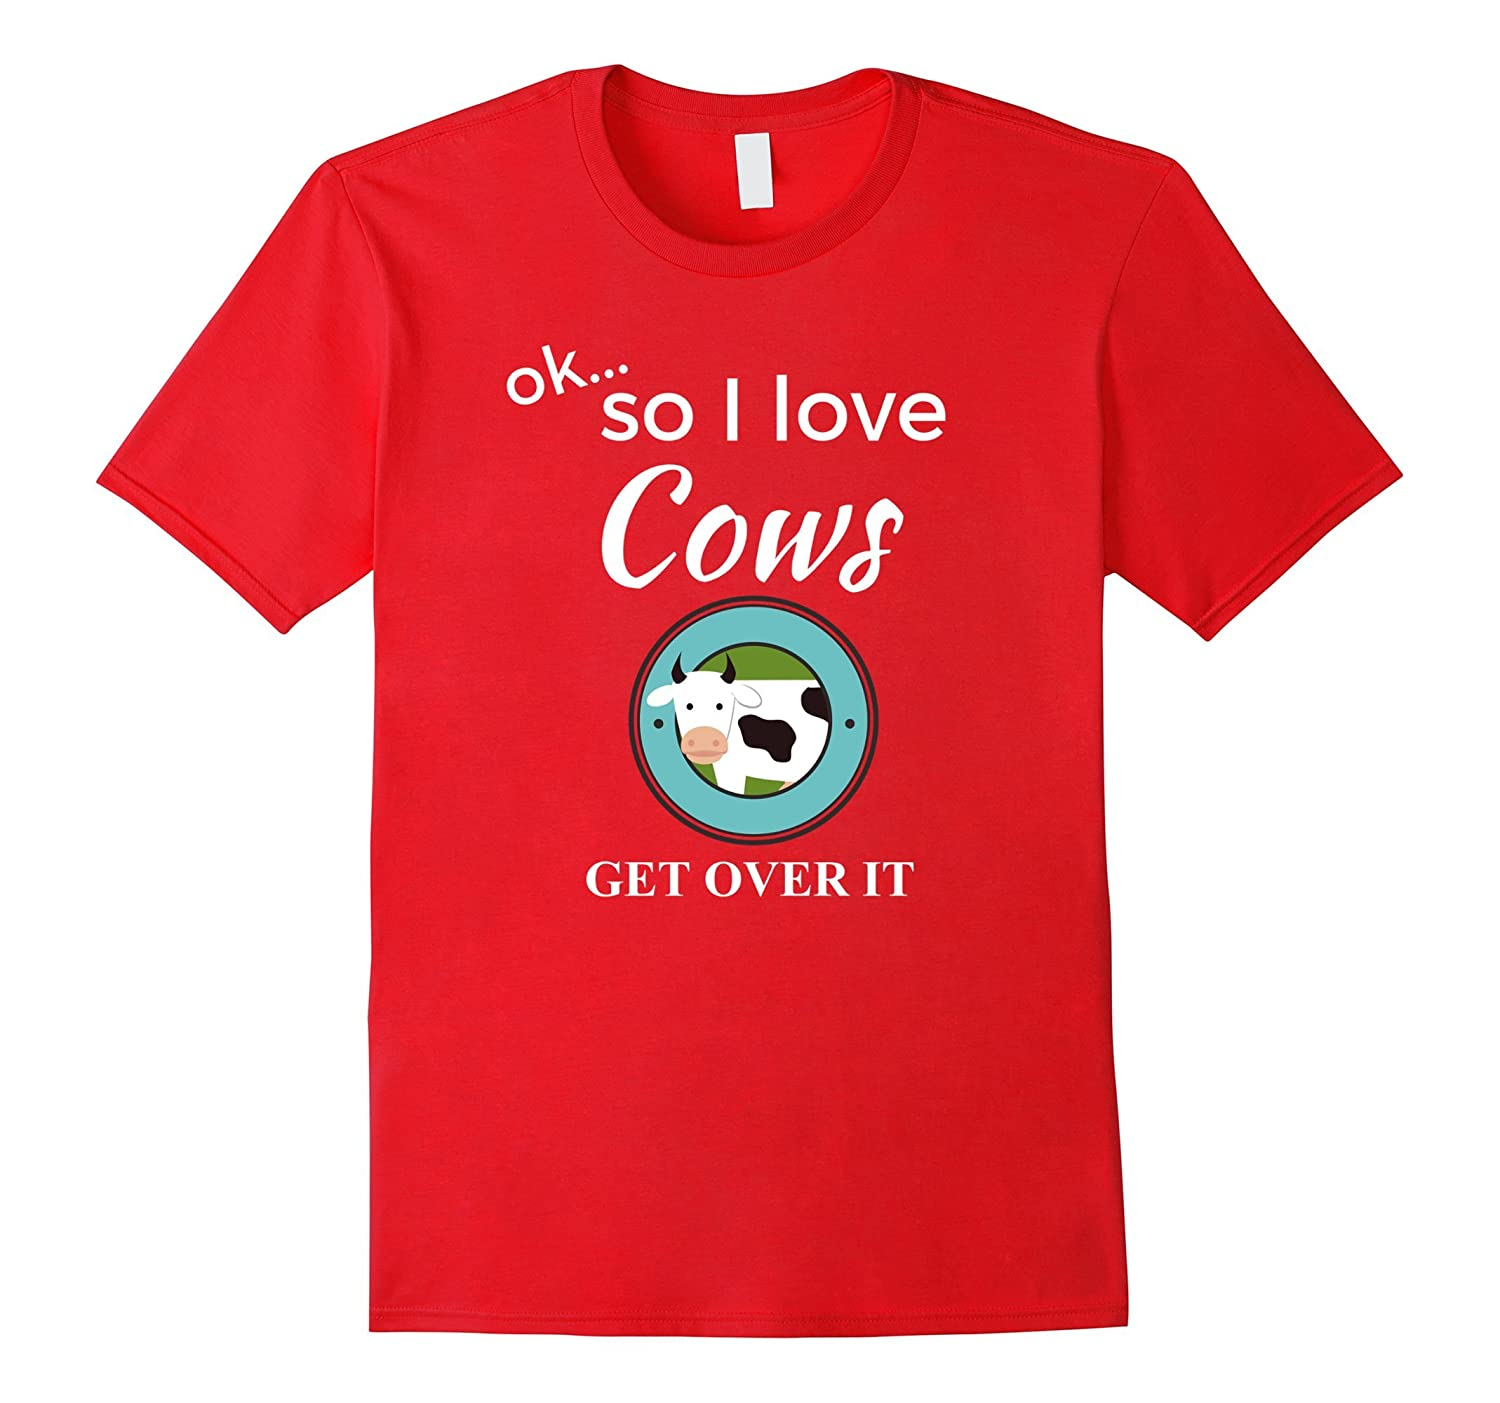 Awesome I Love Cows T-Shirt Fun Cow Shirt for Women Men-PL